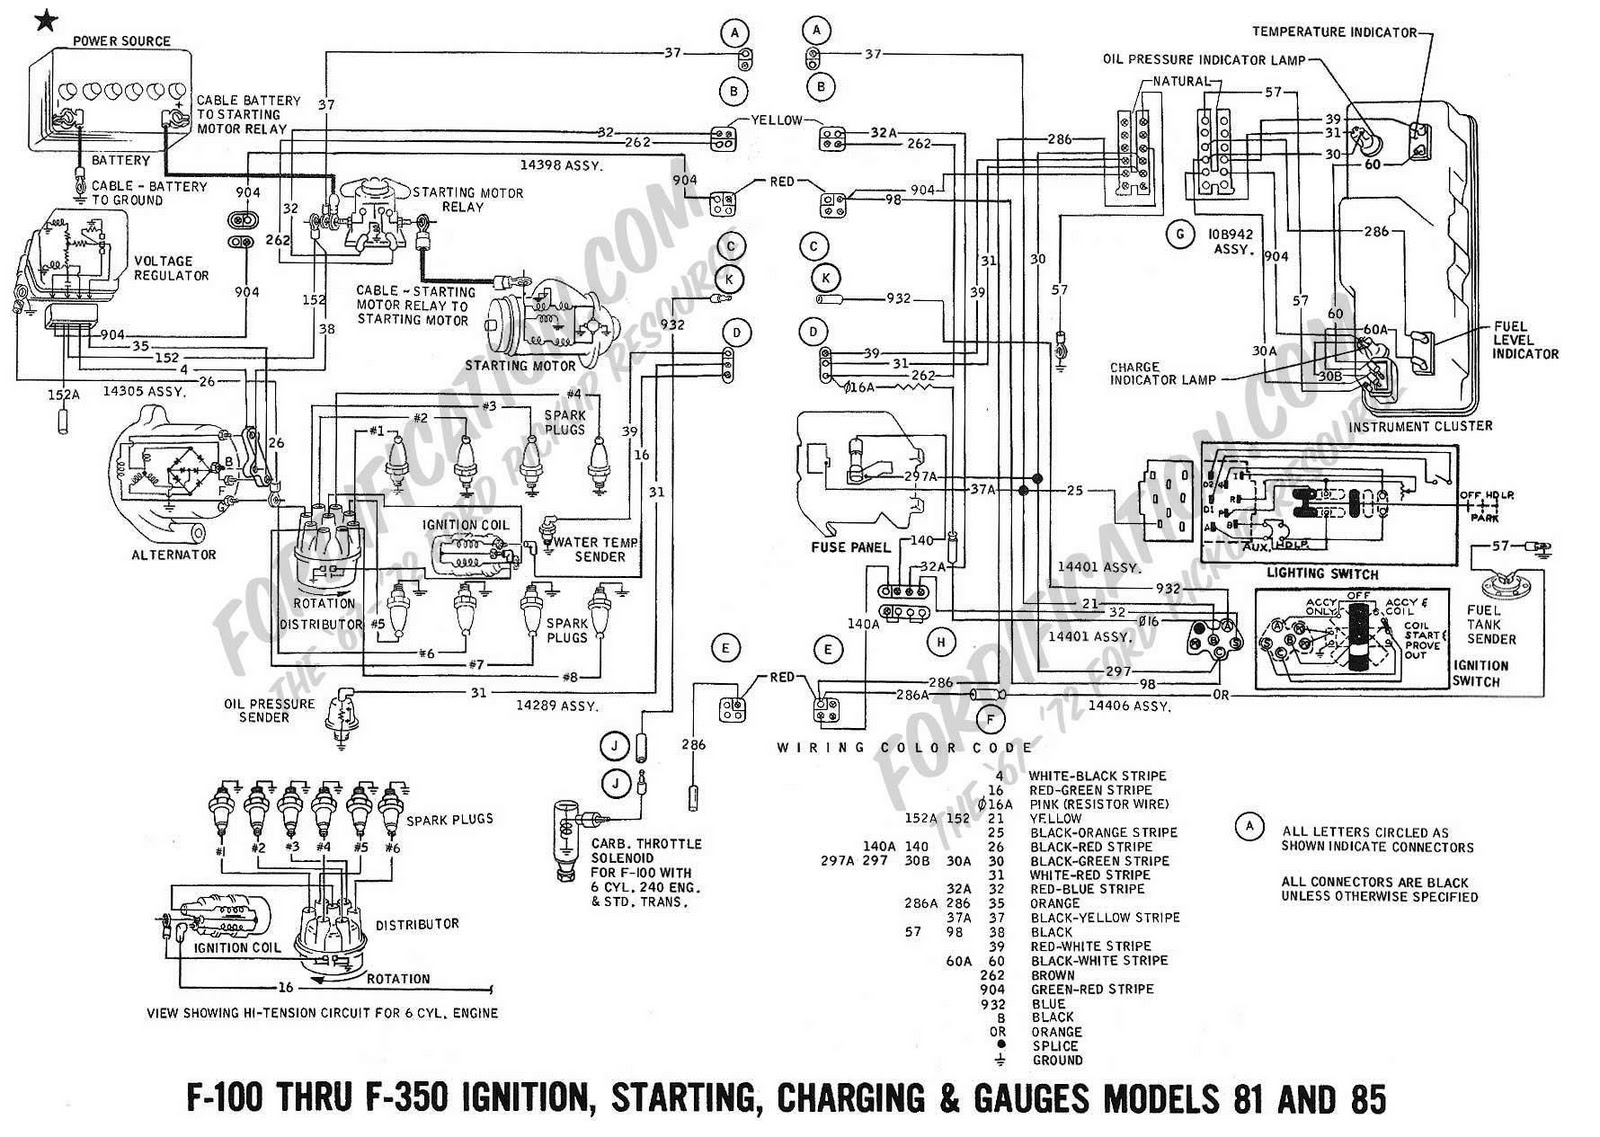 1970 ford f100 charging system wiring diagram